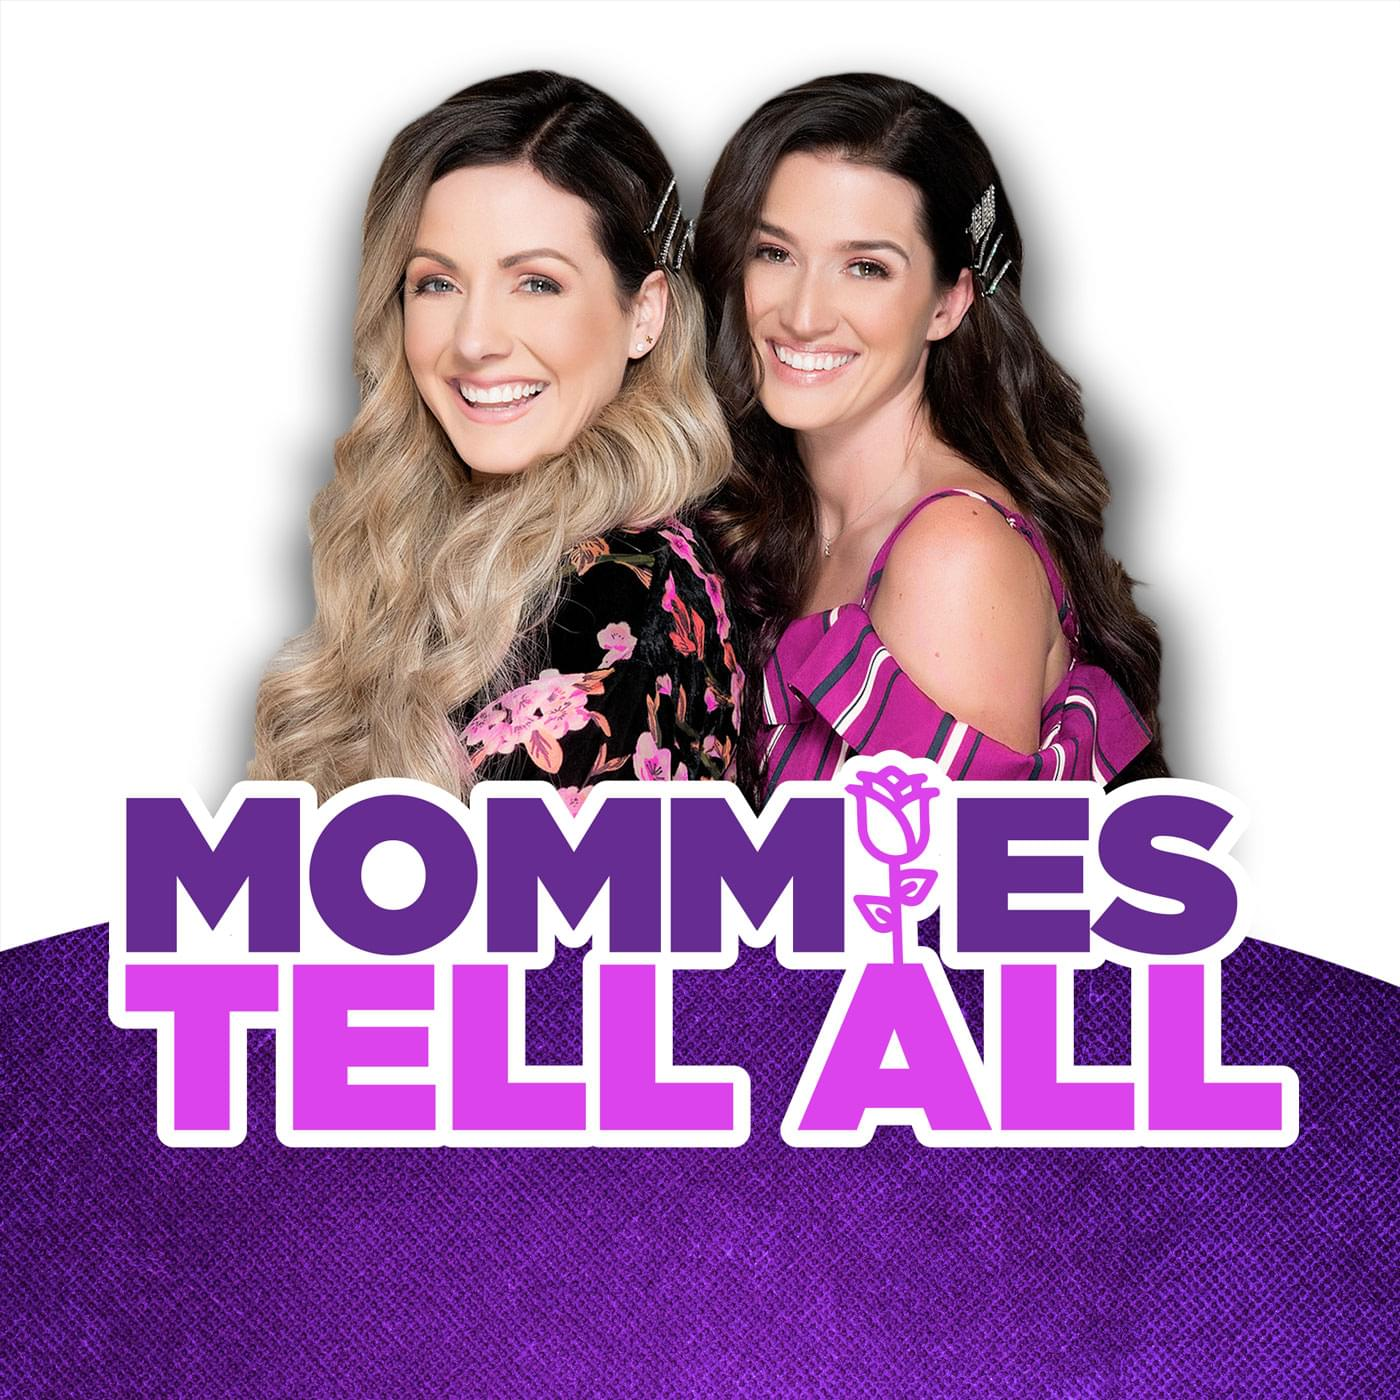 The Mommies Tell All Podcast!